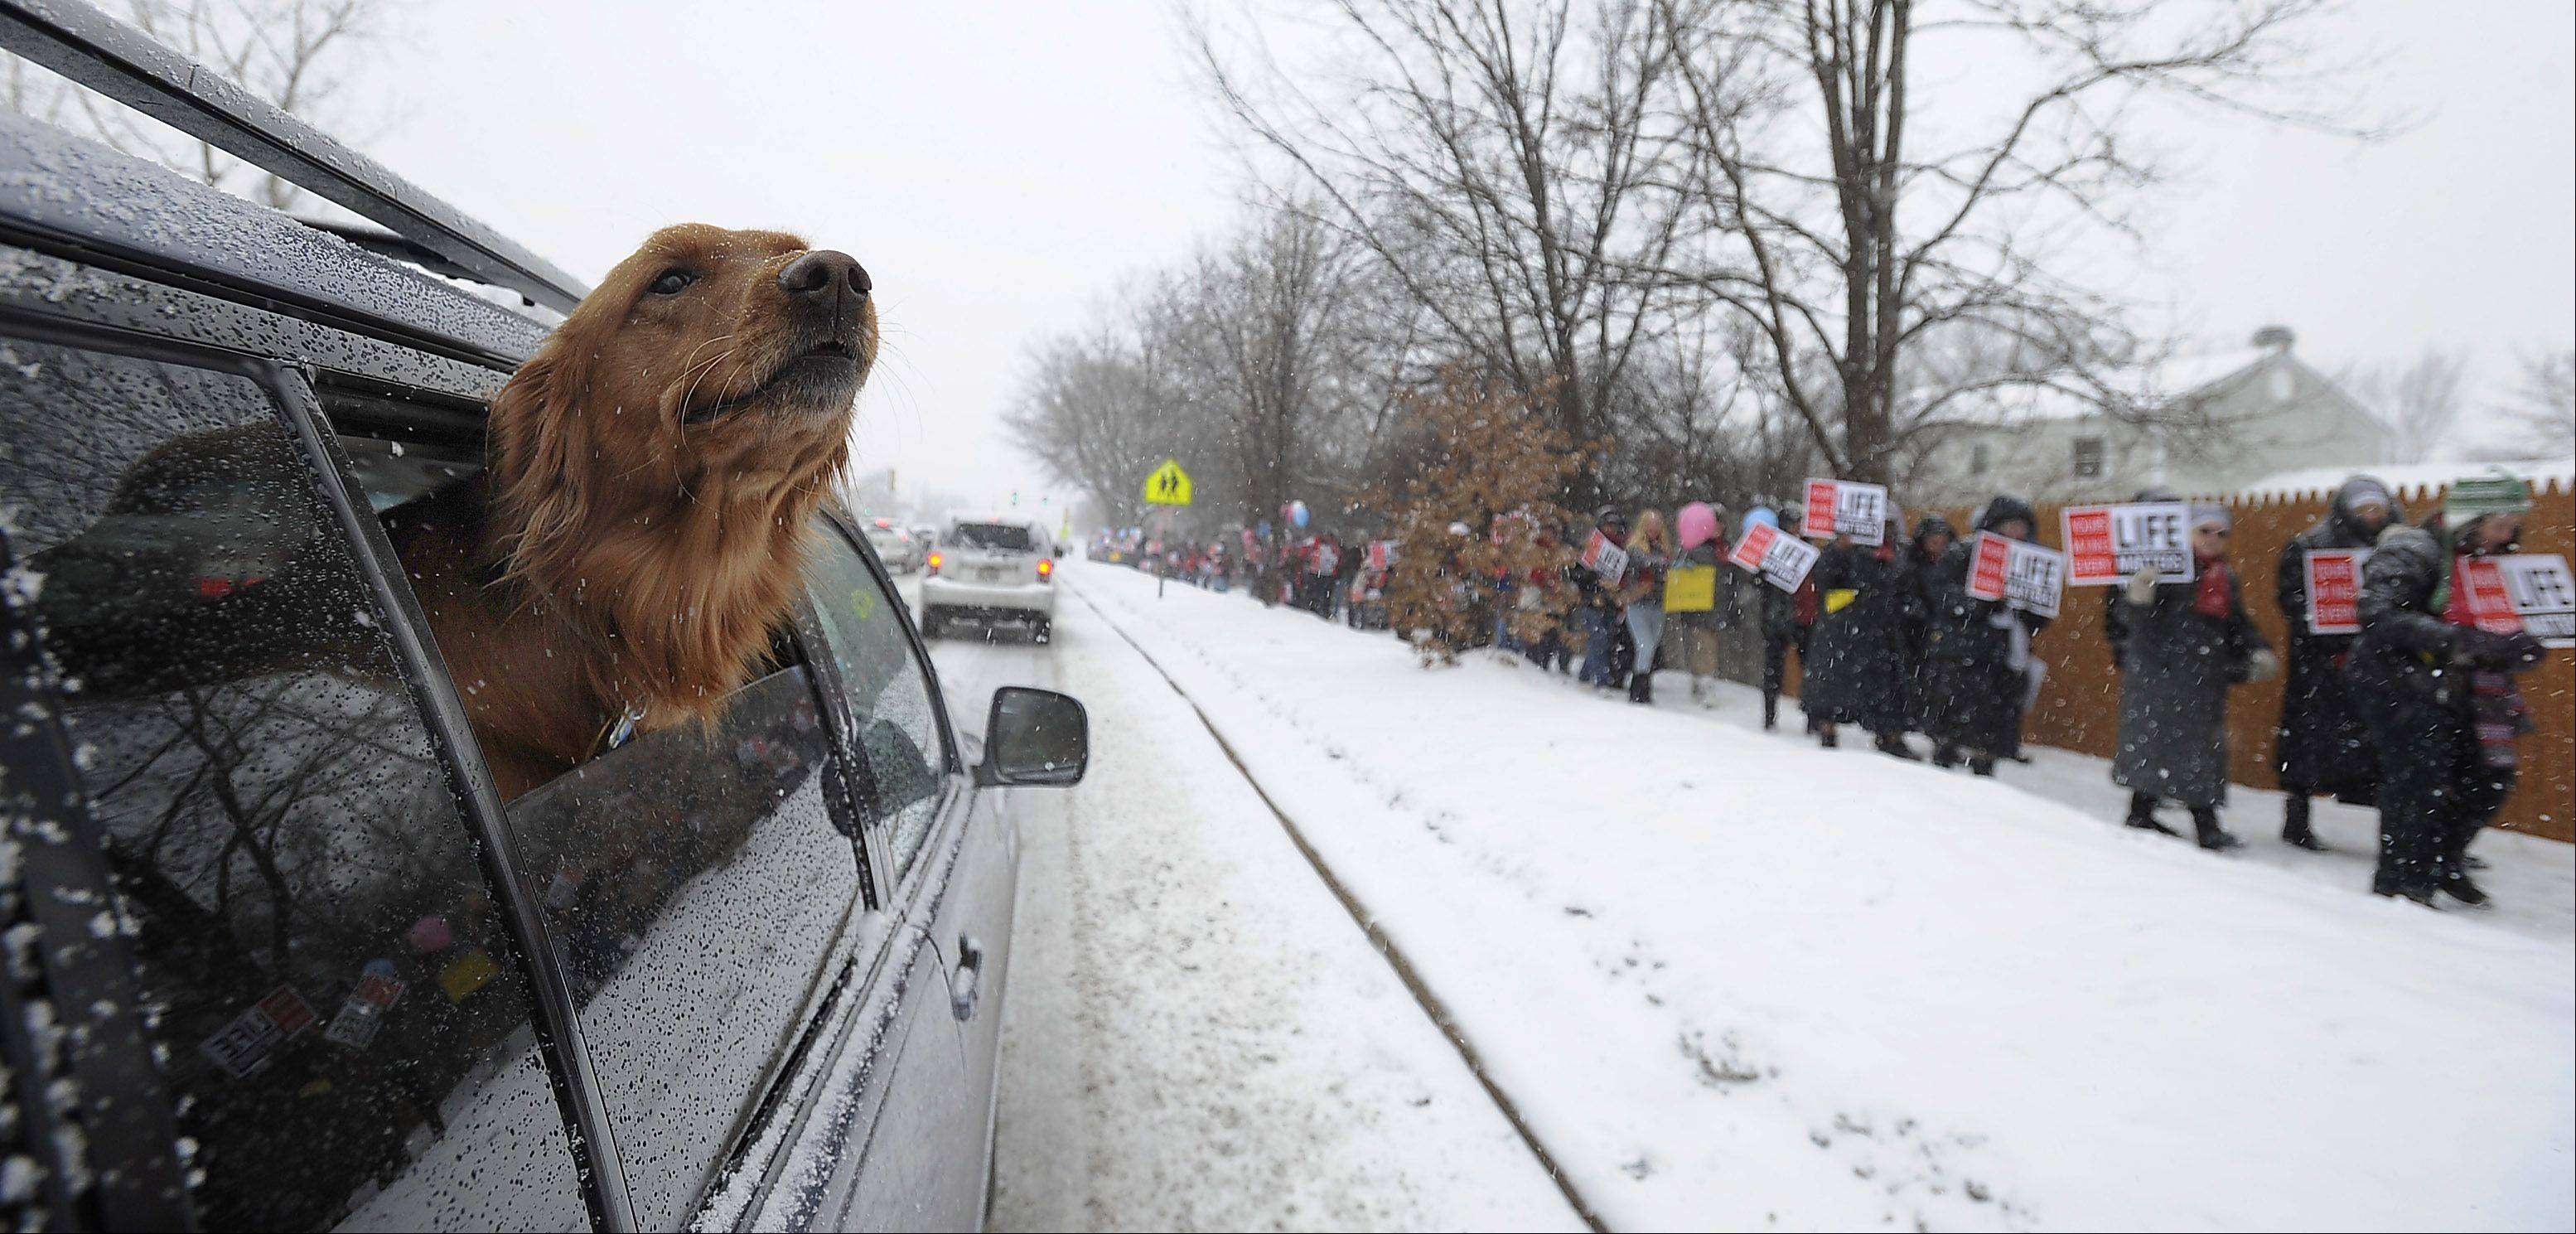 A dogs checks out participants in the 2nd annual NorthWest Families March for Life who marched down Northwest Highway Saturday in Palatine.